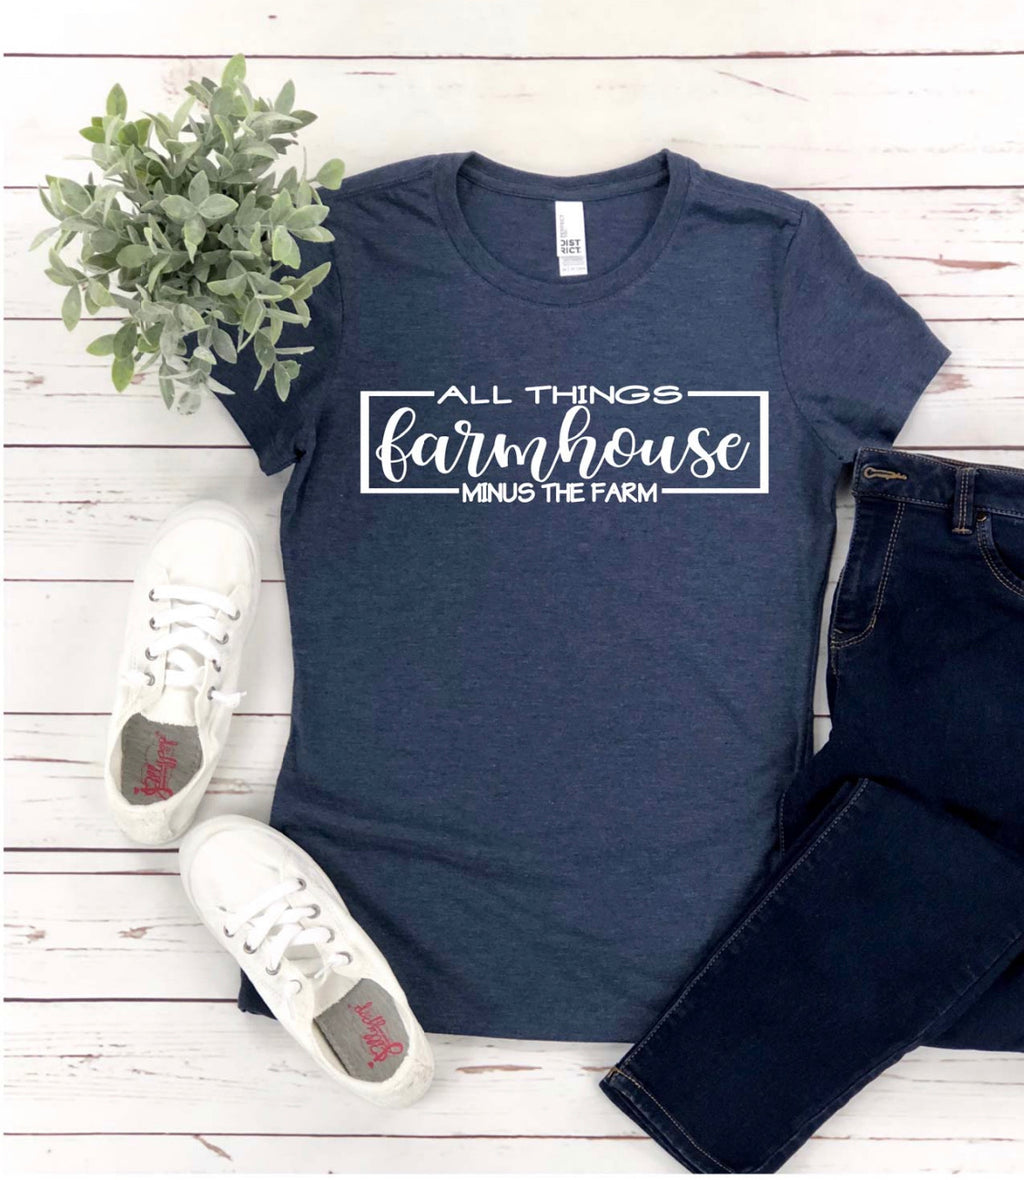 All things Farmhouse (minus the farm) tee